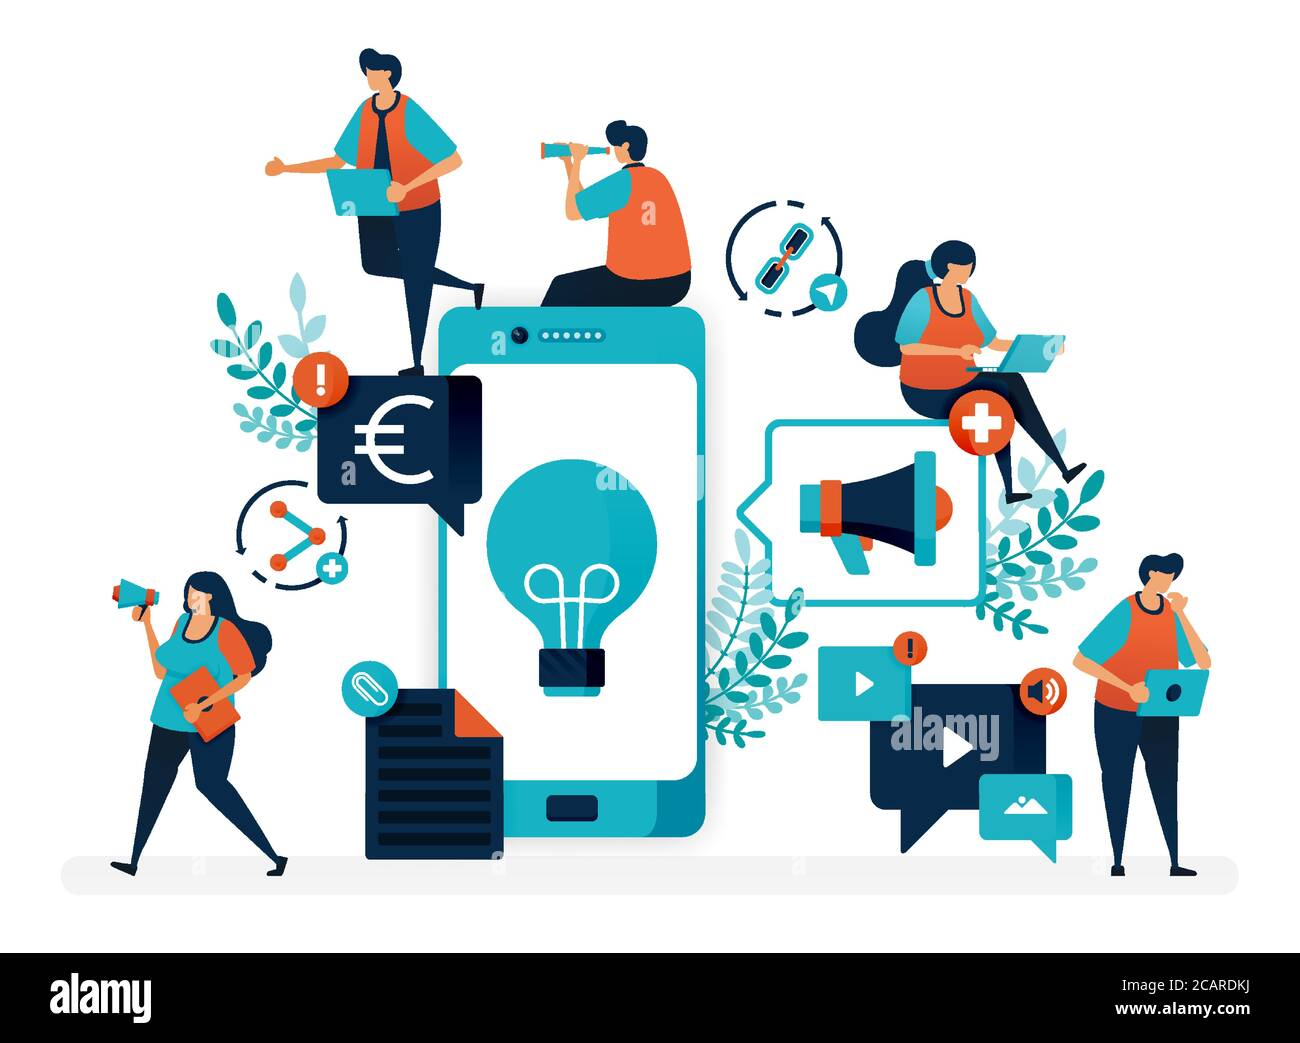 Business ideas by promoting products via mobile. Advertising and marketing with smartphone to profit. Flat vector illustration for landing page, web, Stock Vector